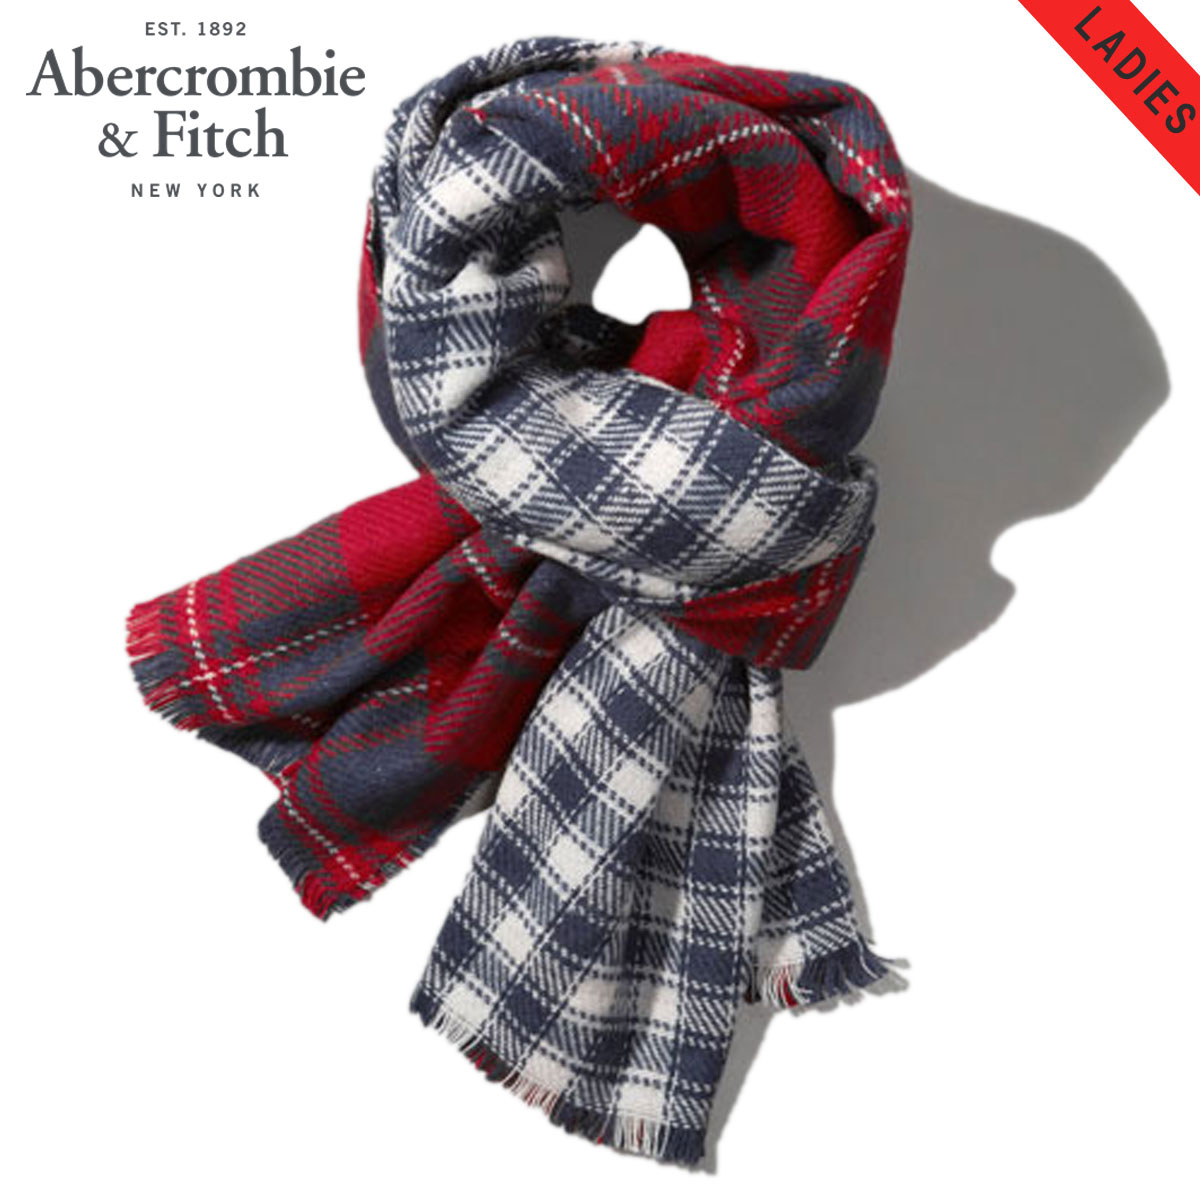 20%OFFセール 【販売期間 10/19 20:00〜10/26 1:59】 アバクロ Abercrombie&Fitch 正規品 ブランケット THE BLANKET Red Plaid 154-540-0325-059 D00S20